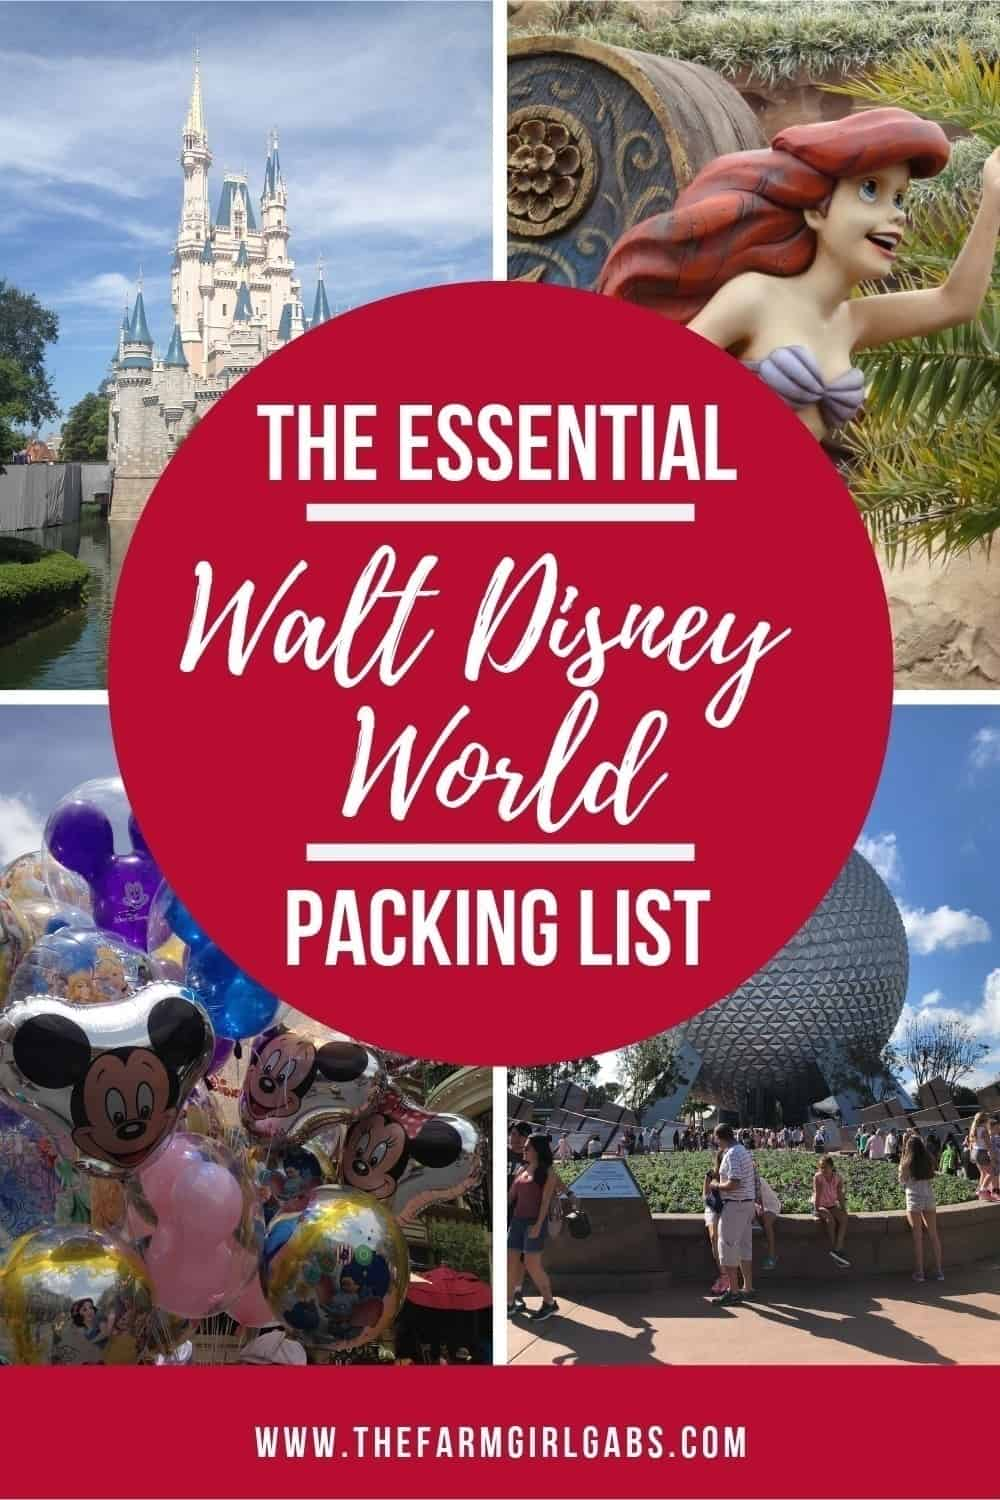 The Essential Walt Disney World Packing List is a great resource for your vacation to the Walt Disney World Resort. This checklist includes all the essential items you need to pack for your Disney vacation. #familytravel #DisneyPackingTips #WaltDisneyWorld